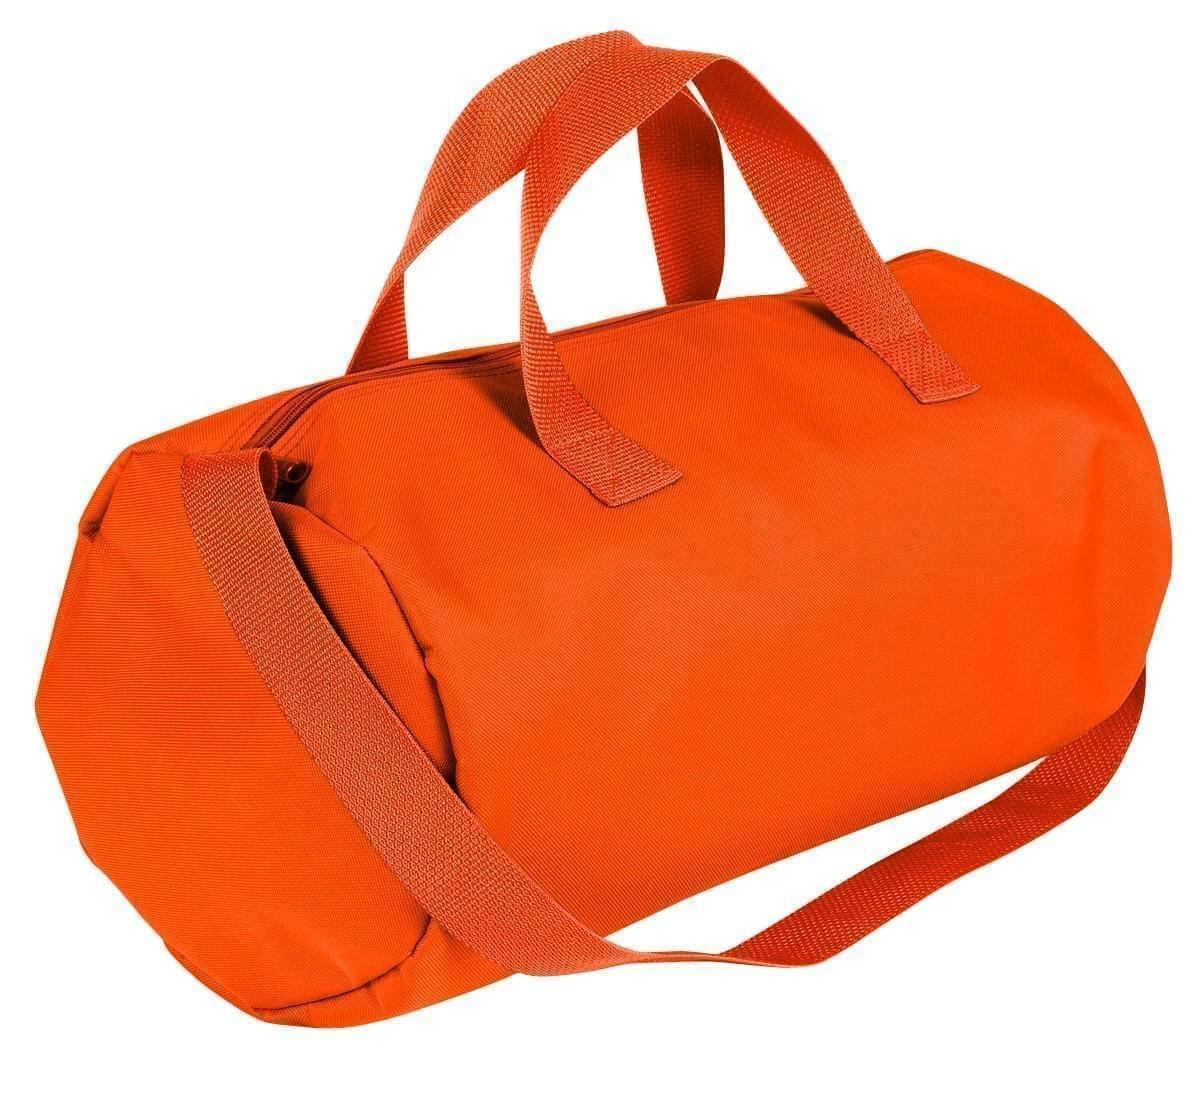 USA Made Nylon Poly Gym Roll Bags, Orange-Orange, ROCX31AAX0